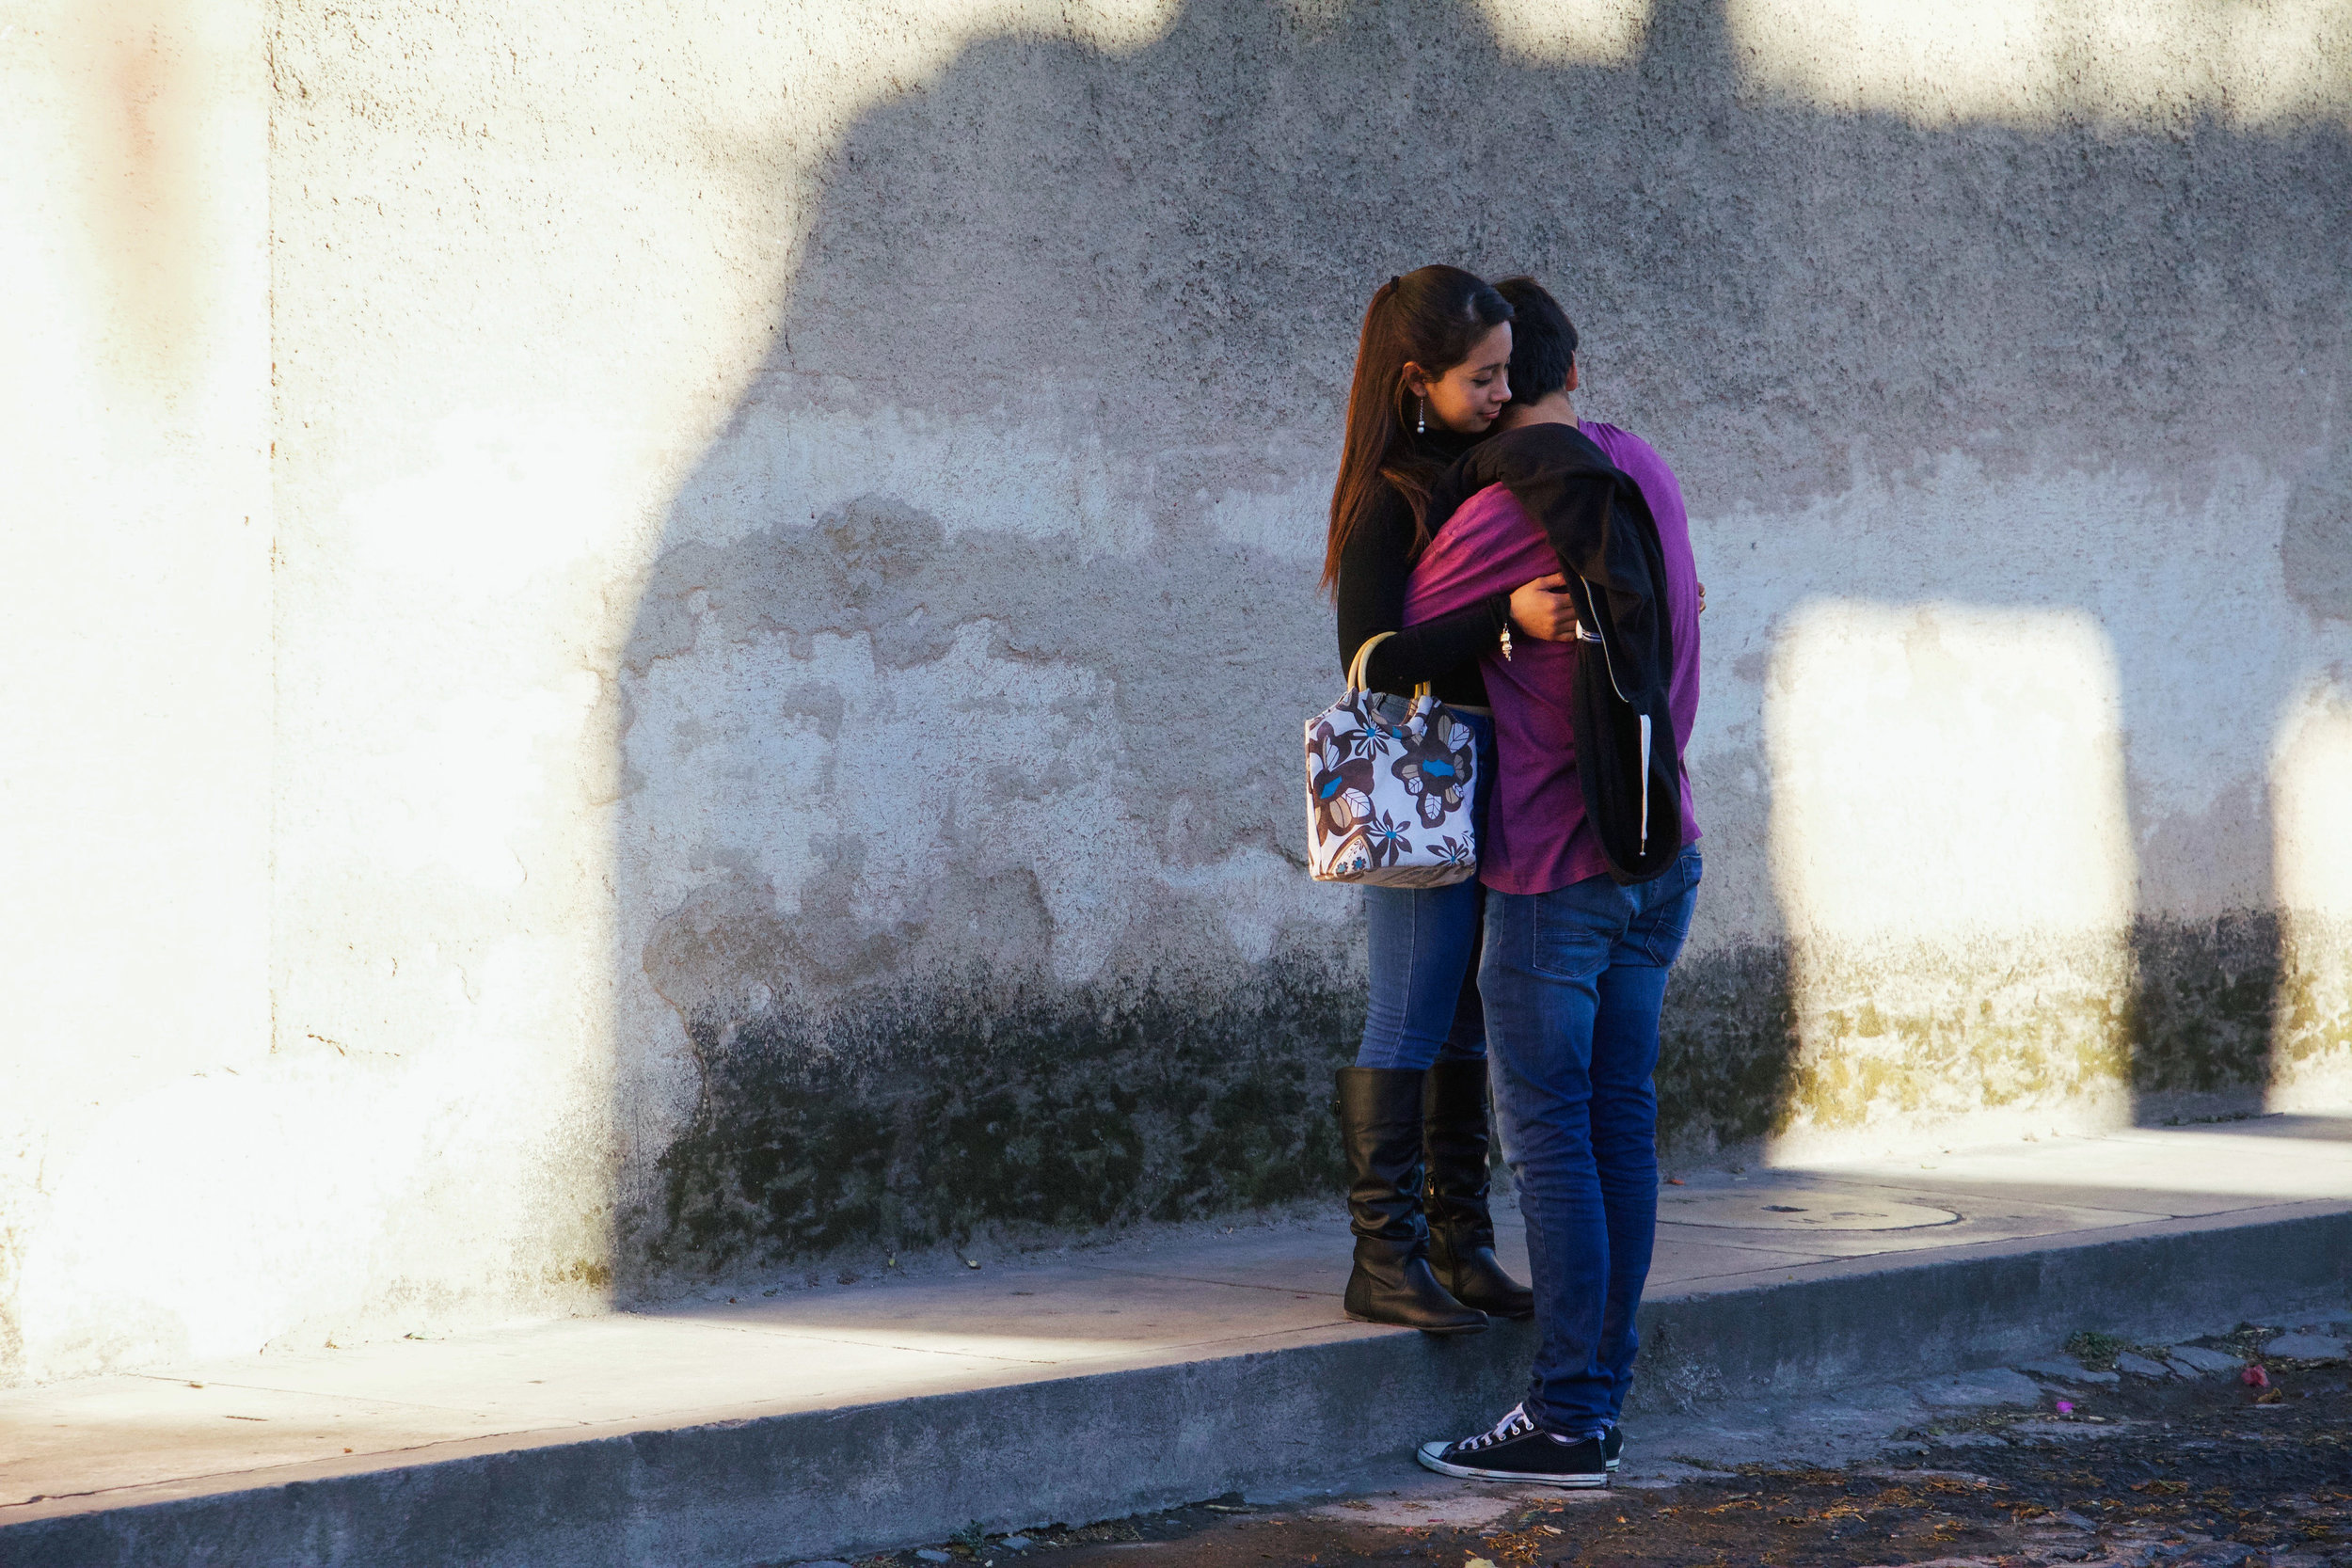 COUPLES EMBRACE AND ROMANCE IN THE STREETS OF ANTIGUA, GUATEMALA THROUGH THE MONTH OF JANUARY. PUBLIC DISPLAYS OF AFFECTION ARE COMMONPLACE IN GUATEMALAN CULTURE